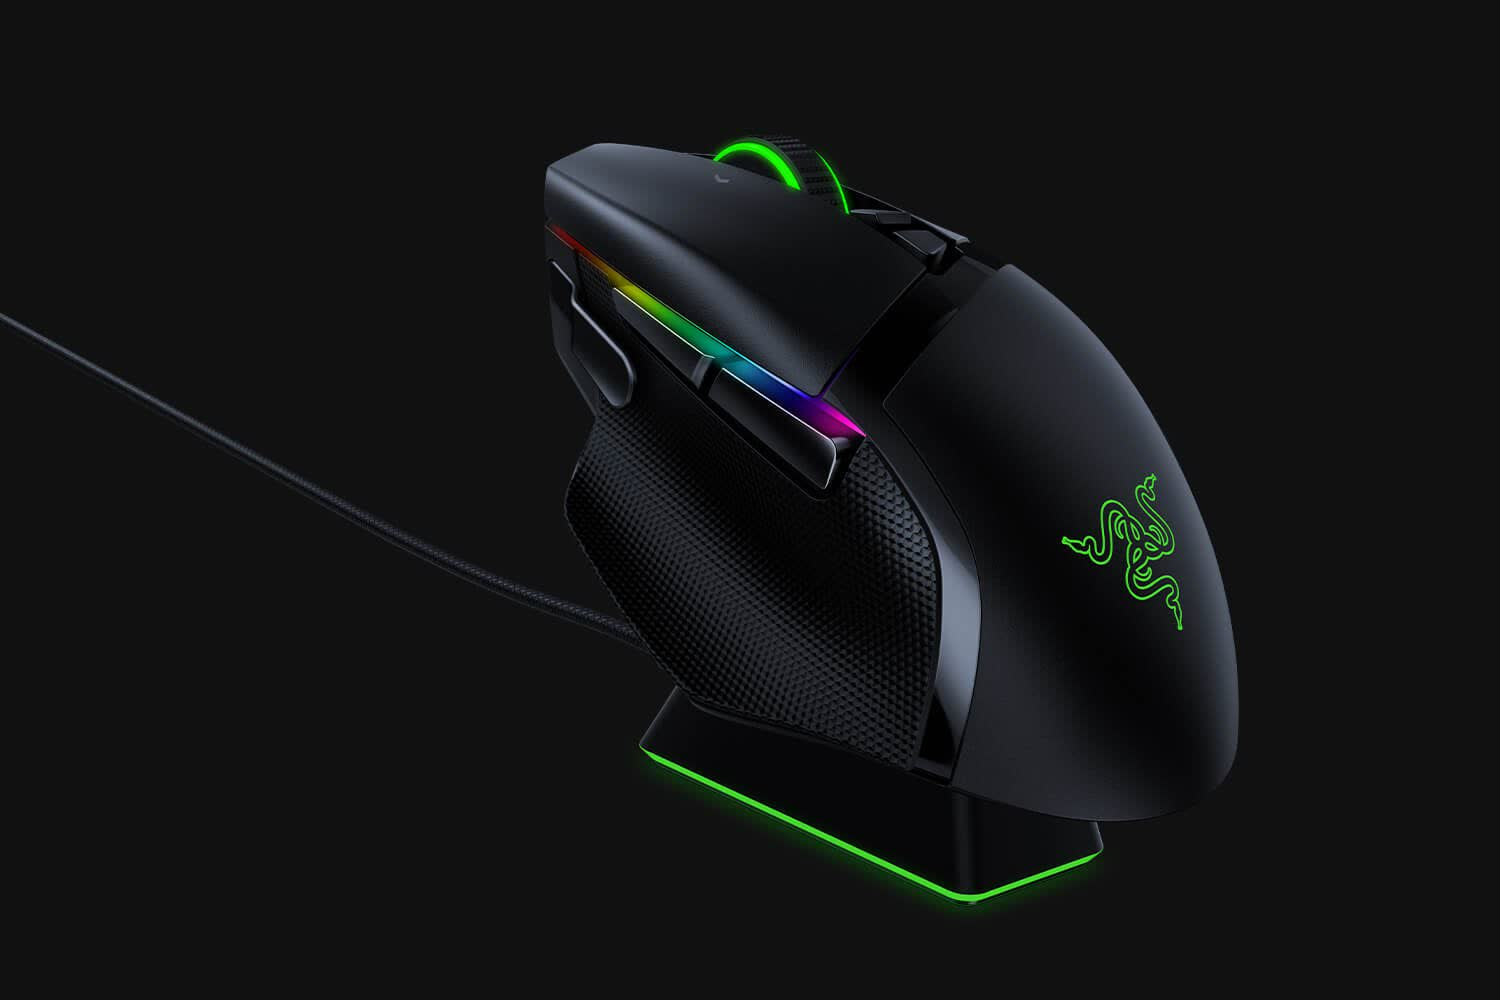 Get Razer's Basilisk Ultimate gaming mouse and a $50 Steam gift card for just $129.99